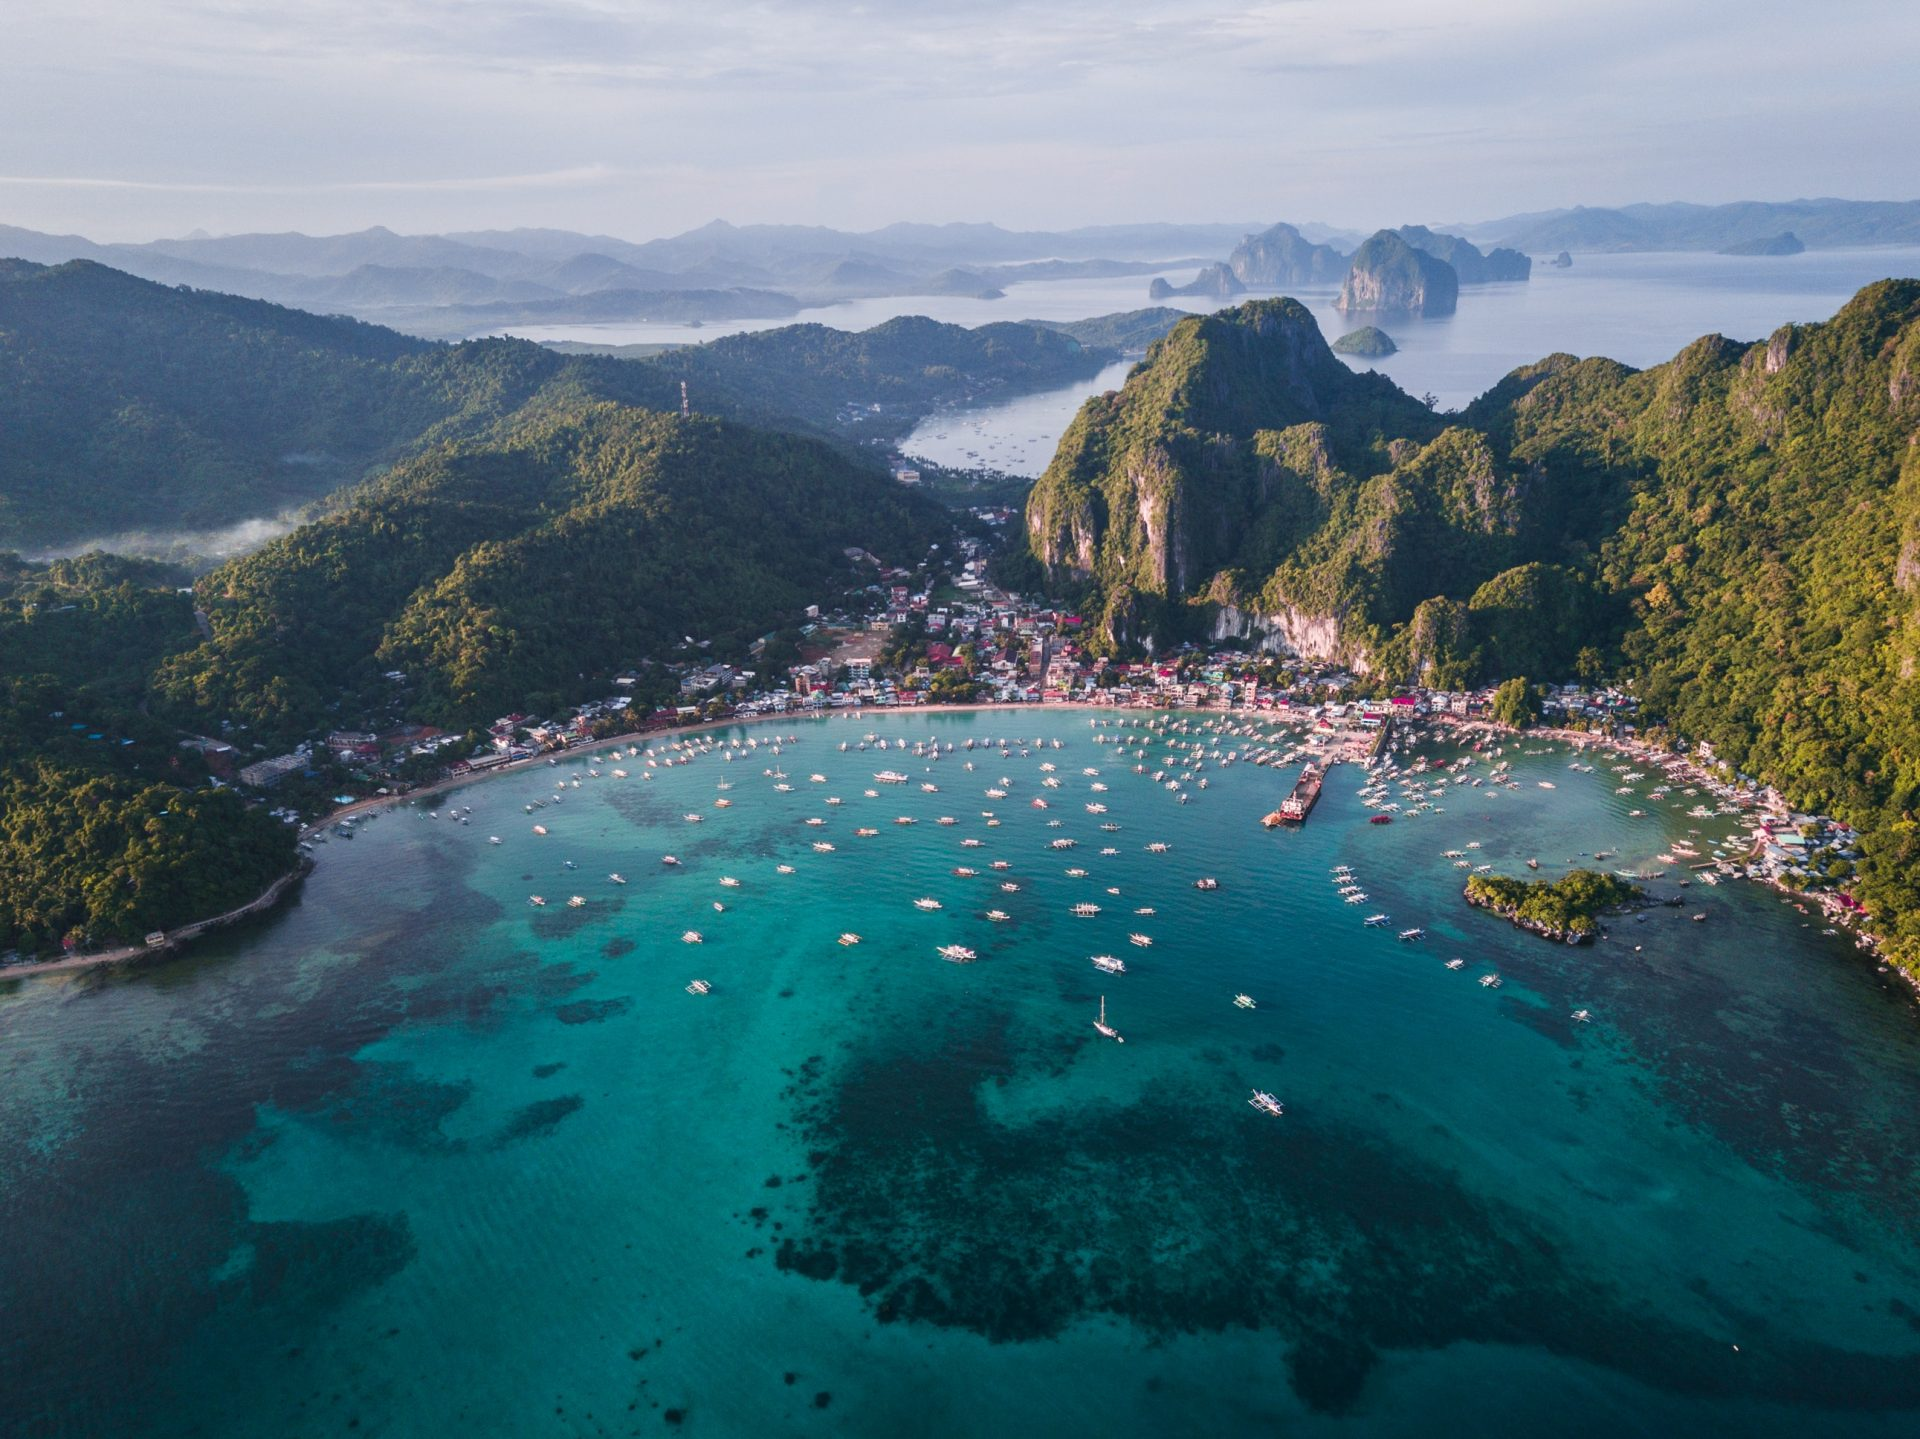 eibner saliba 3T9dDY0WqDI unsplash Planning a Trip to the Philippines? Here's What You Need to Do First